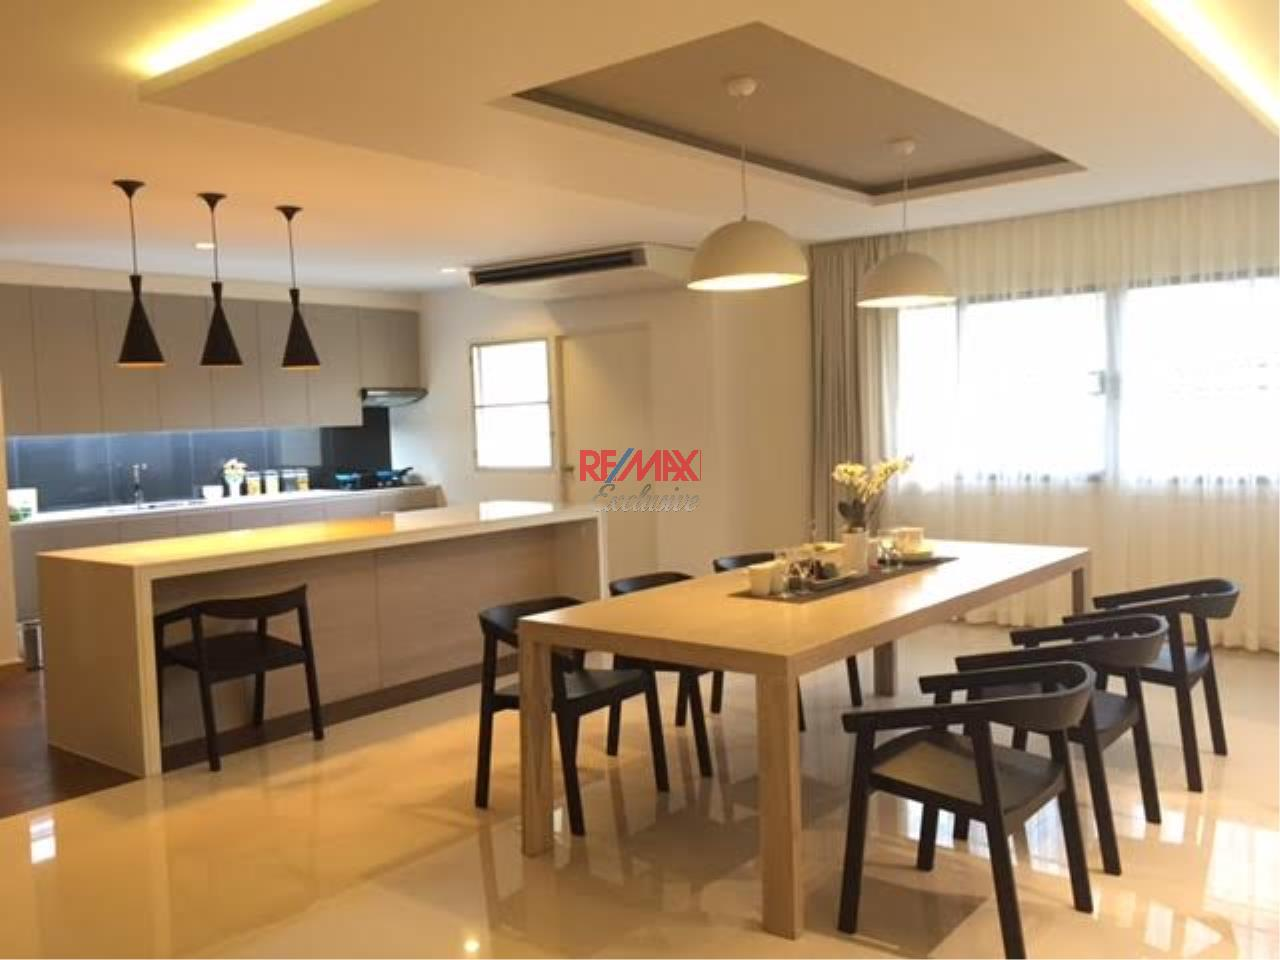 RE/MAX Exclusive Agency's Big Space Apartment in Thonglor for rent 86,000 THB 2